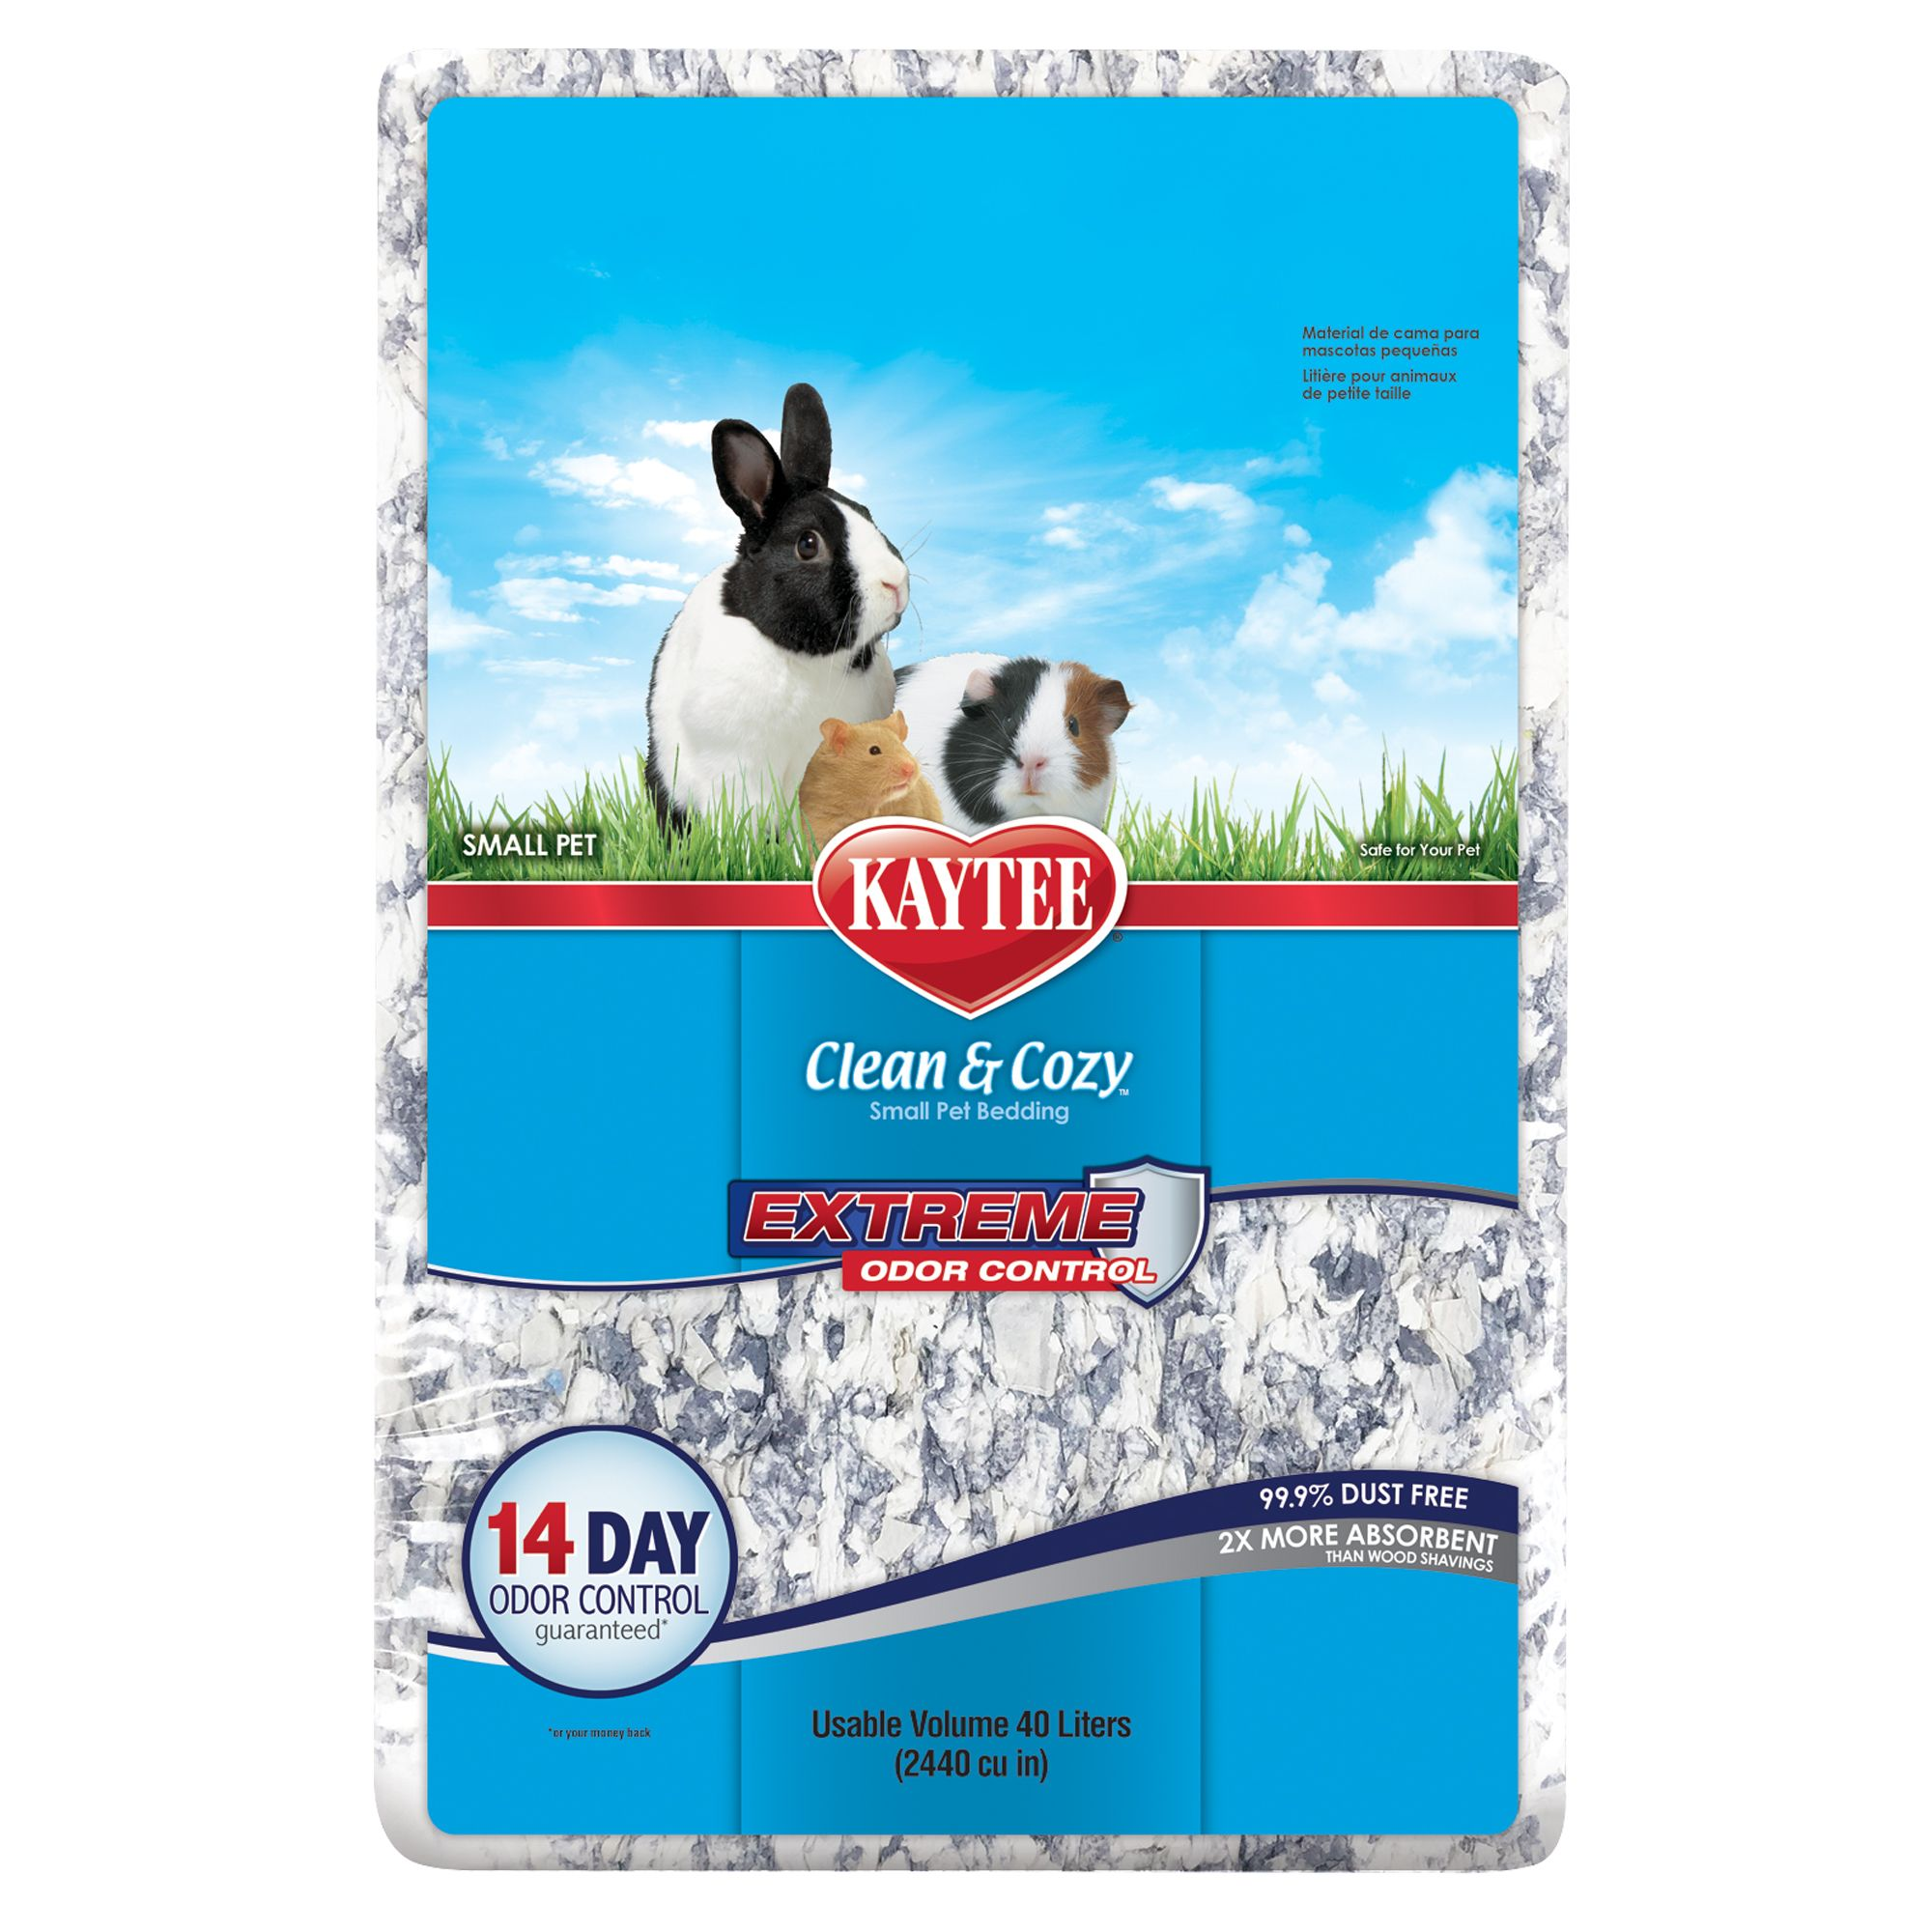 Kaytee Clean Cozy Trade Extreme Odor Control Small Pet Bedding Small Pet Litter Bedding Petsmart